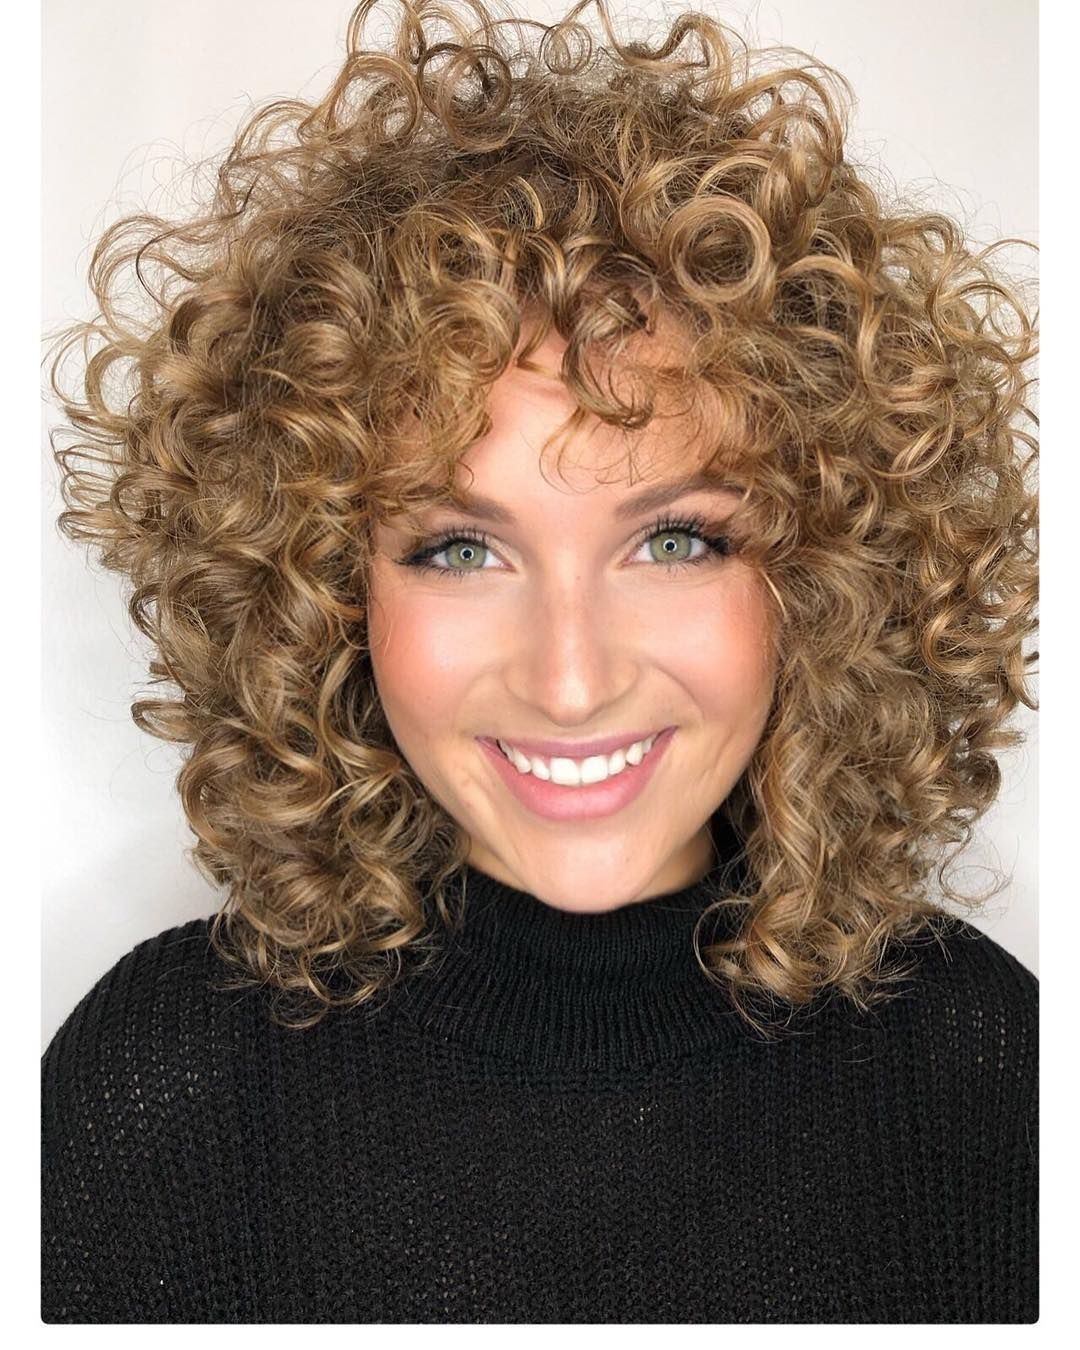 Few Curlycut That Never Give Her The Wowww Moment Until Rezocut Short Layered Curly Hair Natural Curls Hairstyles Curly Natural Curls